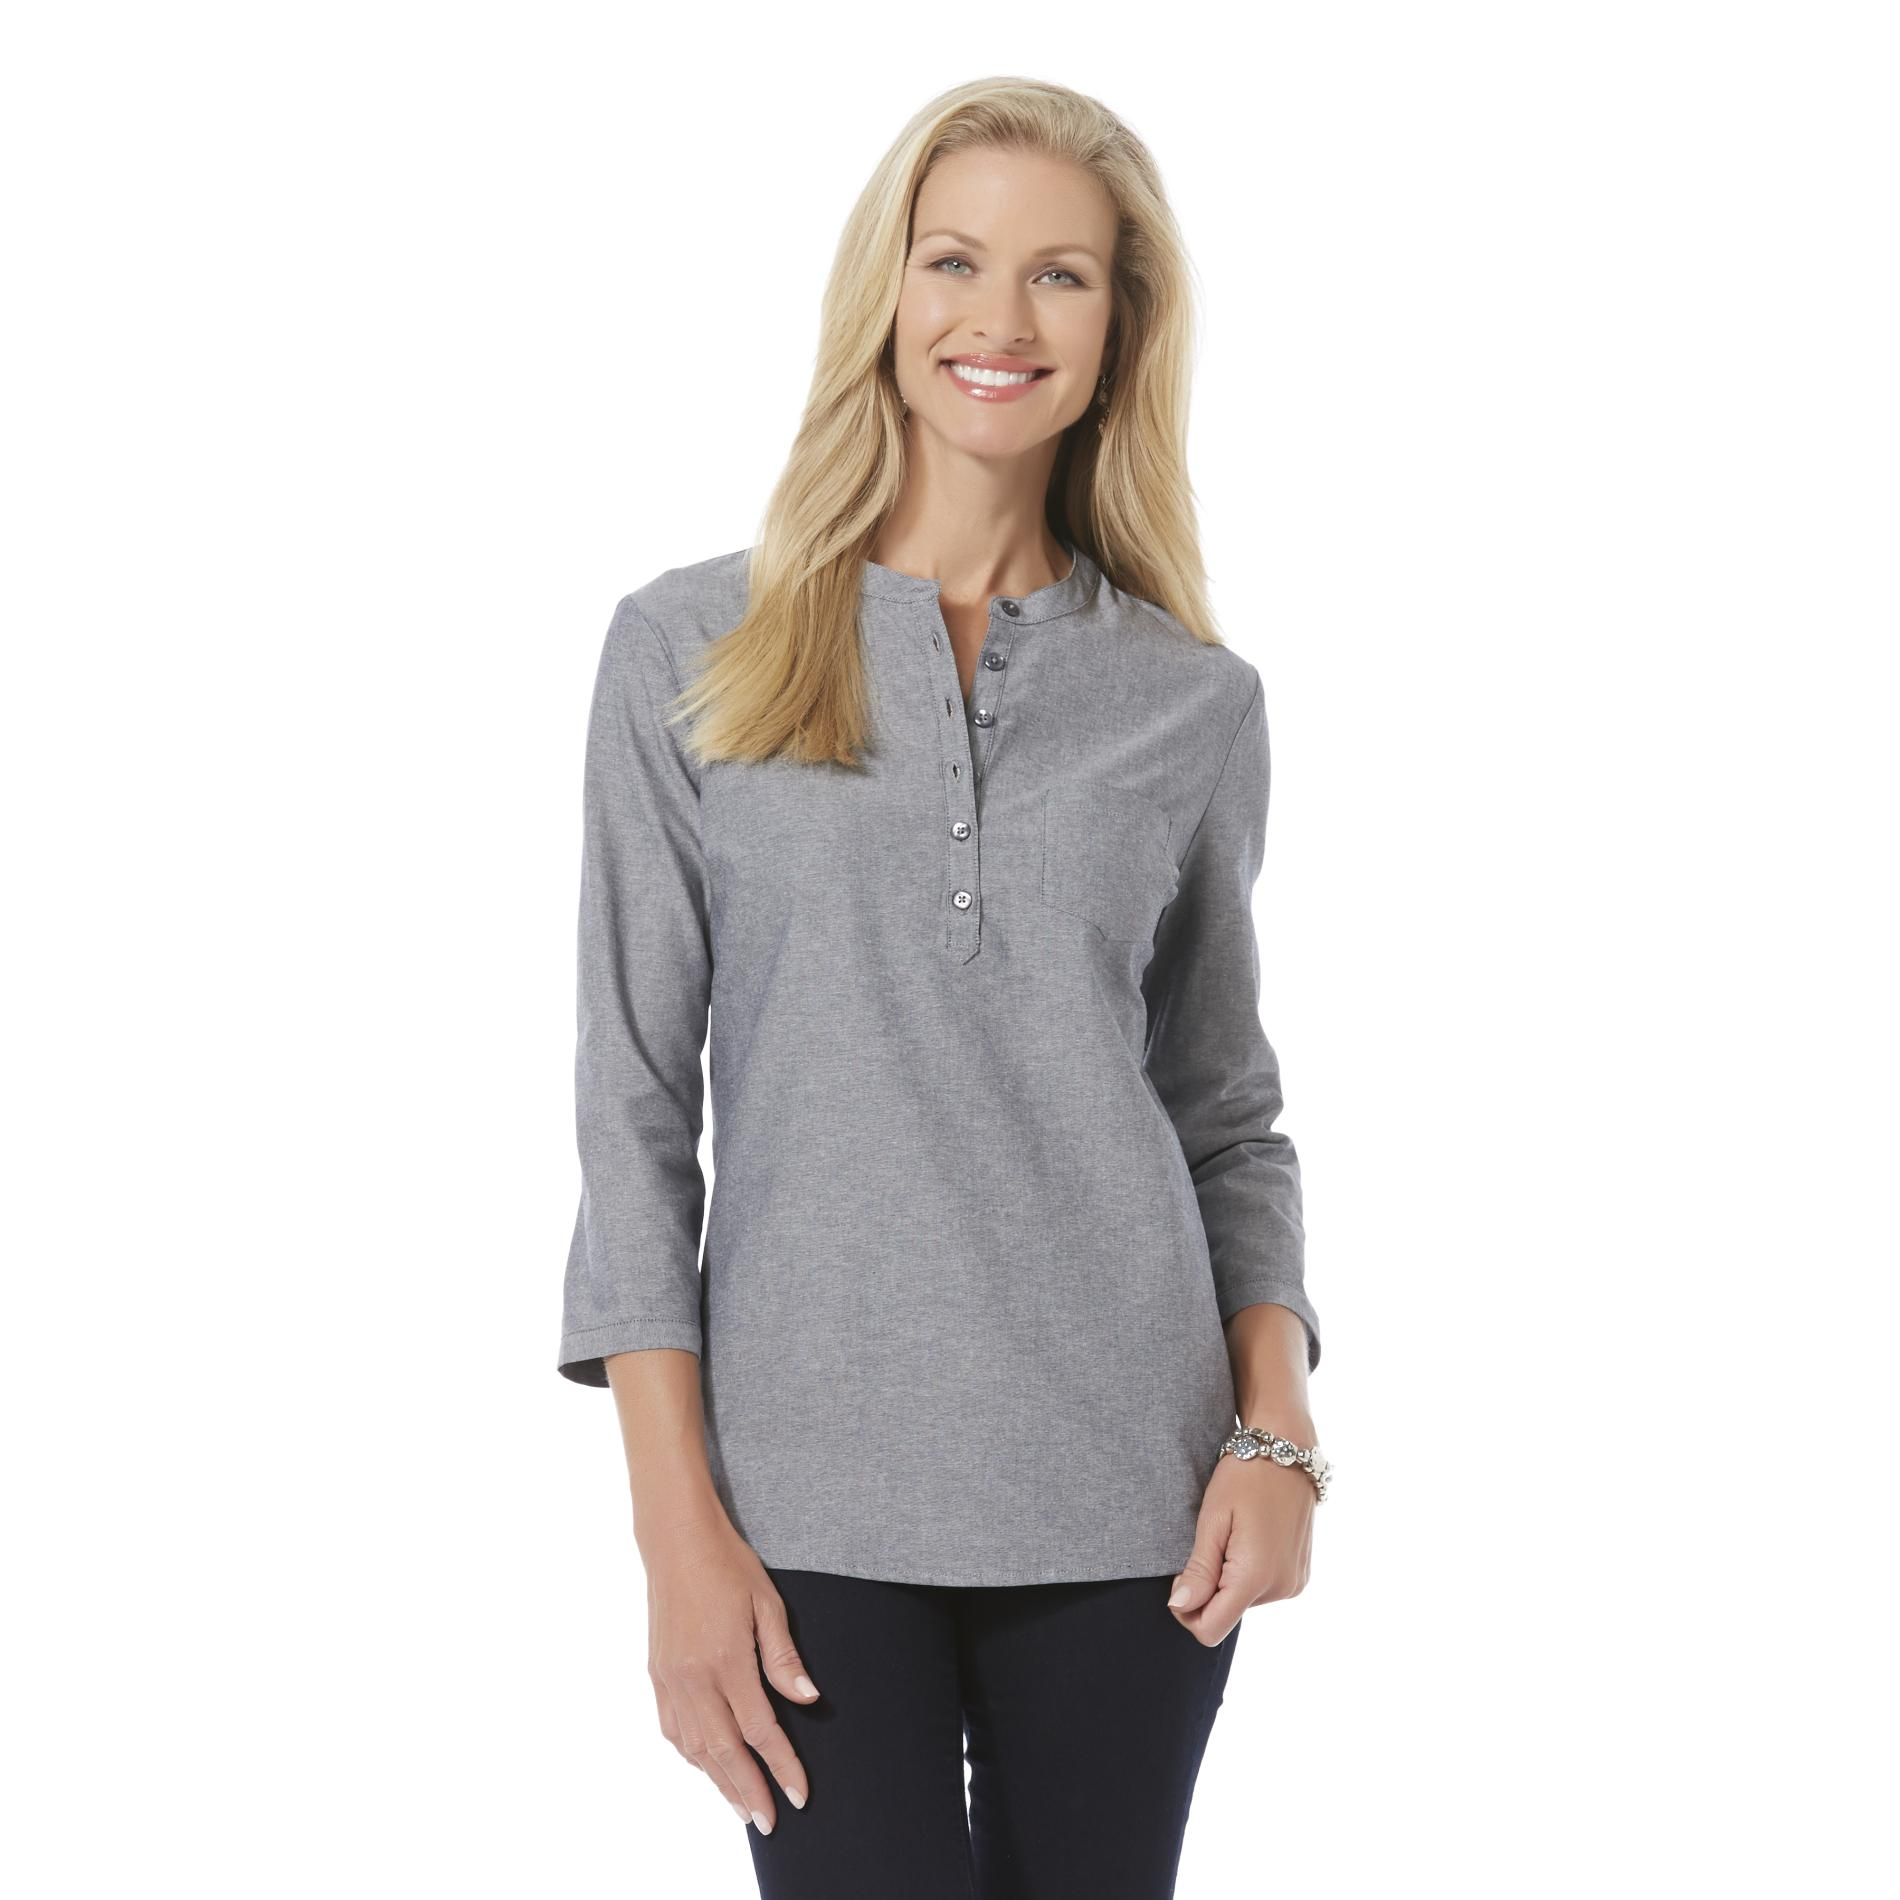 Made in India from % Organic Cotton, this woven, textured chambray cowl tunic is sophisticated and comfortable. It features pockets and goes perfectly with your favorite leggings or .